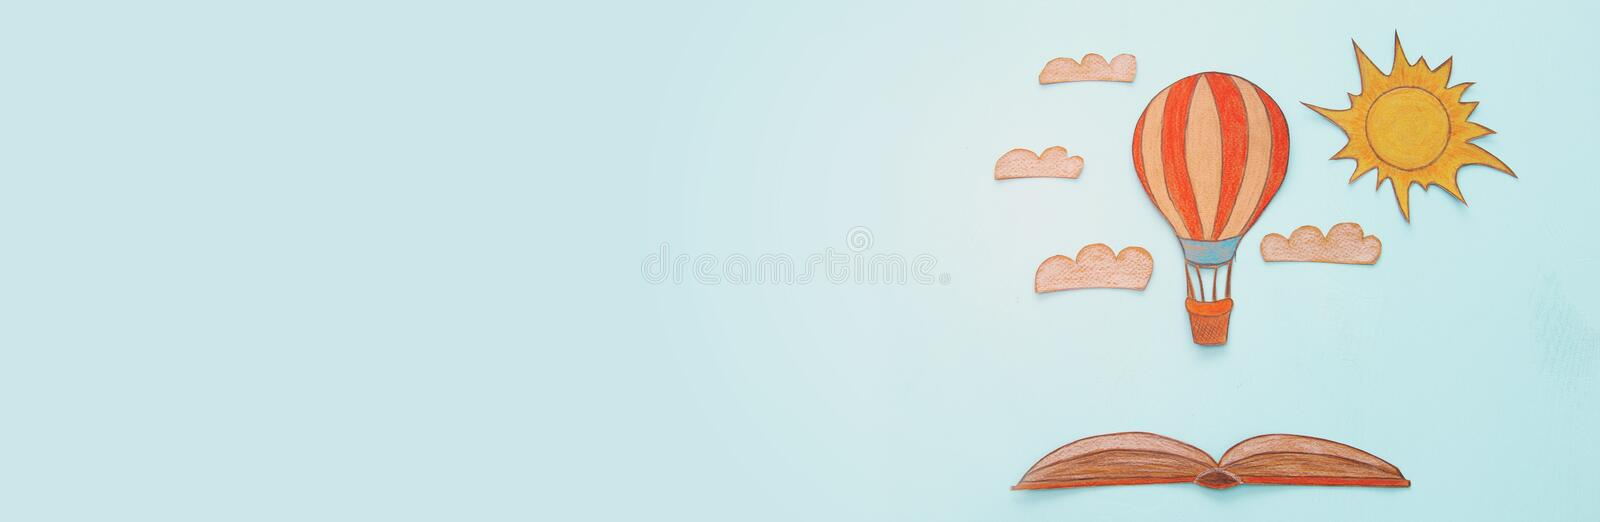 Banner of Hot air balloon, space elements shapes cut from paper and painted stock illustration